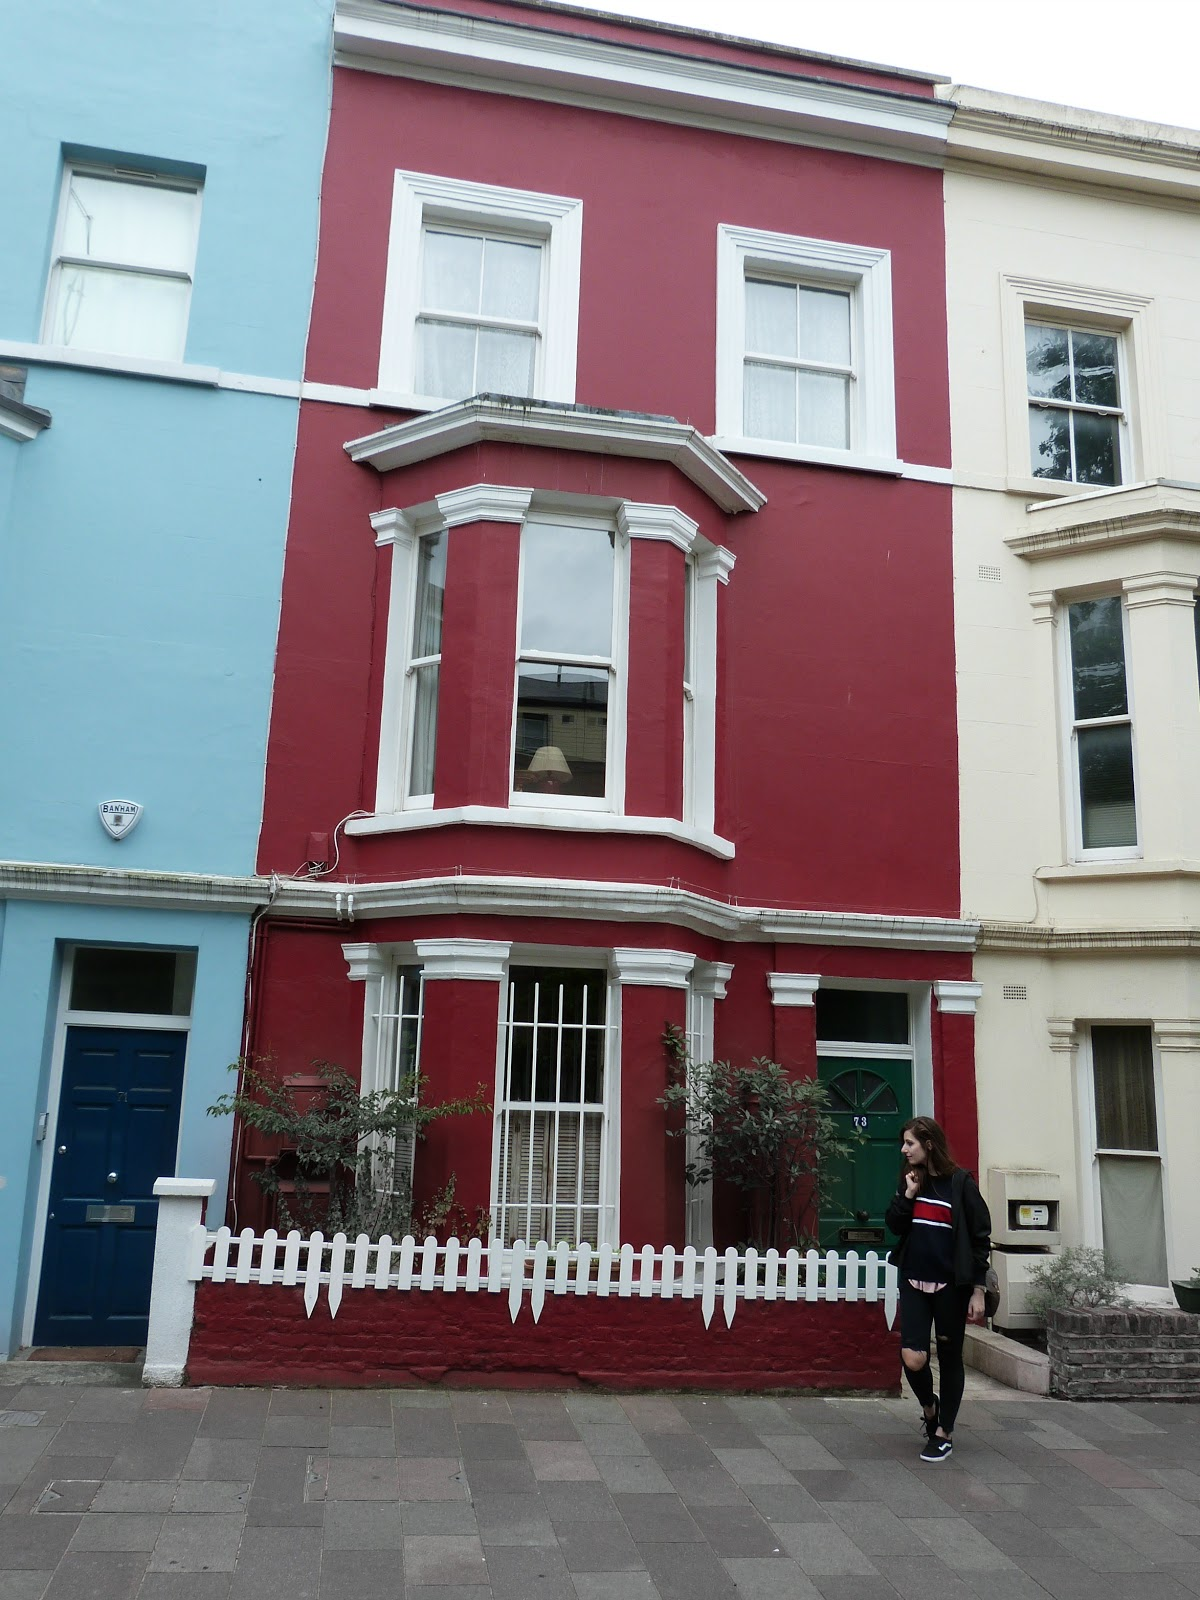 Things to do in London - Notting Hill